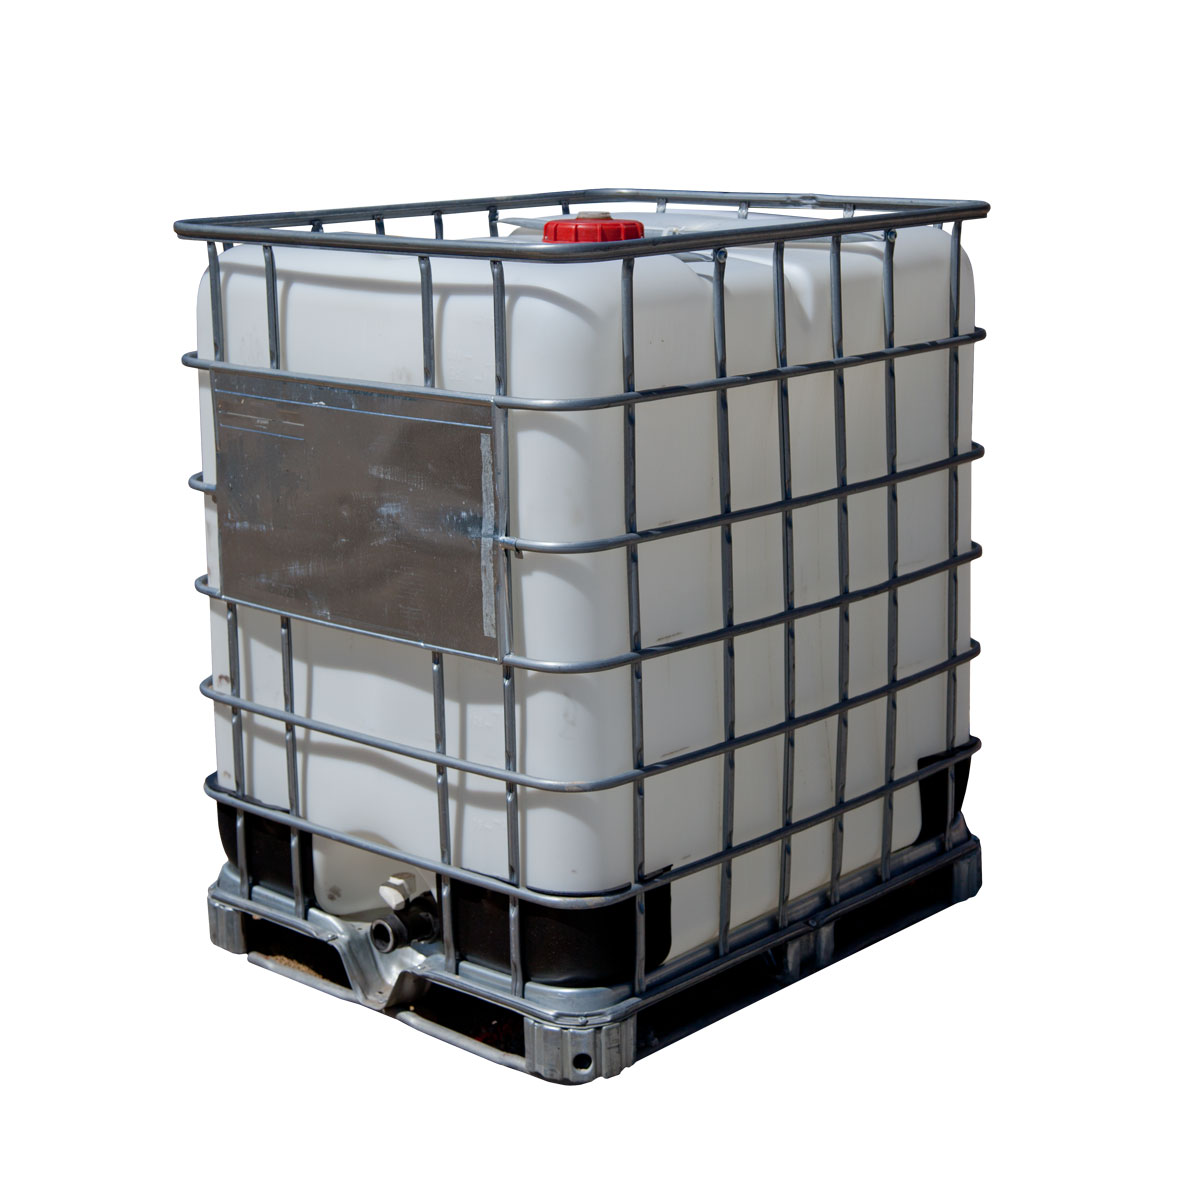 Portable Water Tanks : Fresh water tank rental in canton ohio miller company